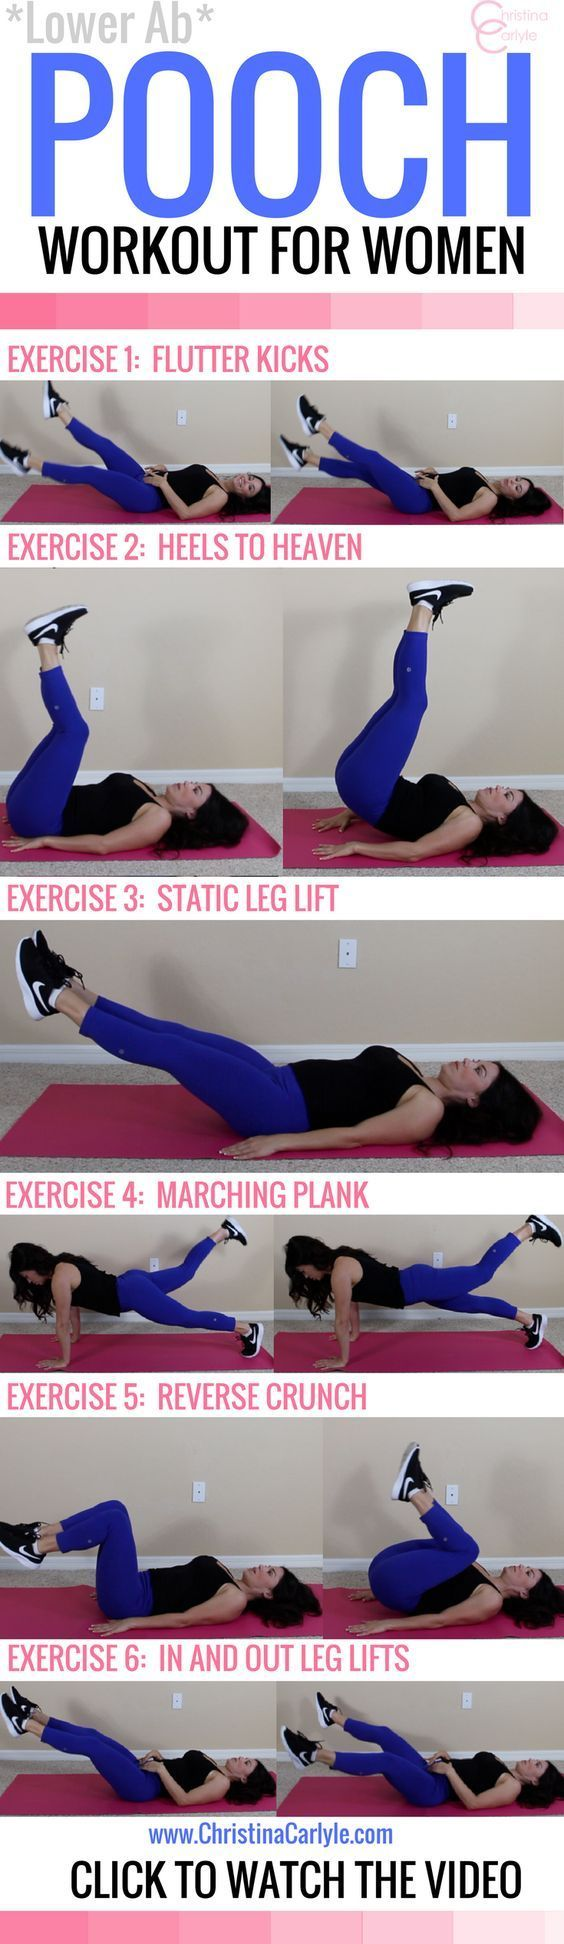 Lower Ab Pooch Workout for Women #lower abs (link isn't correct)